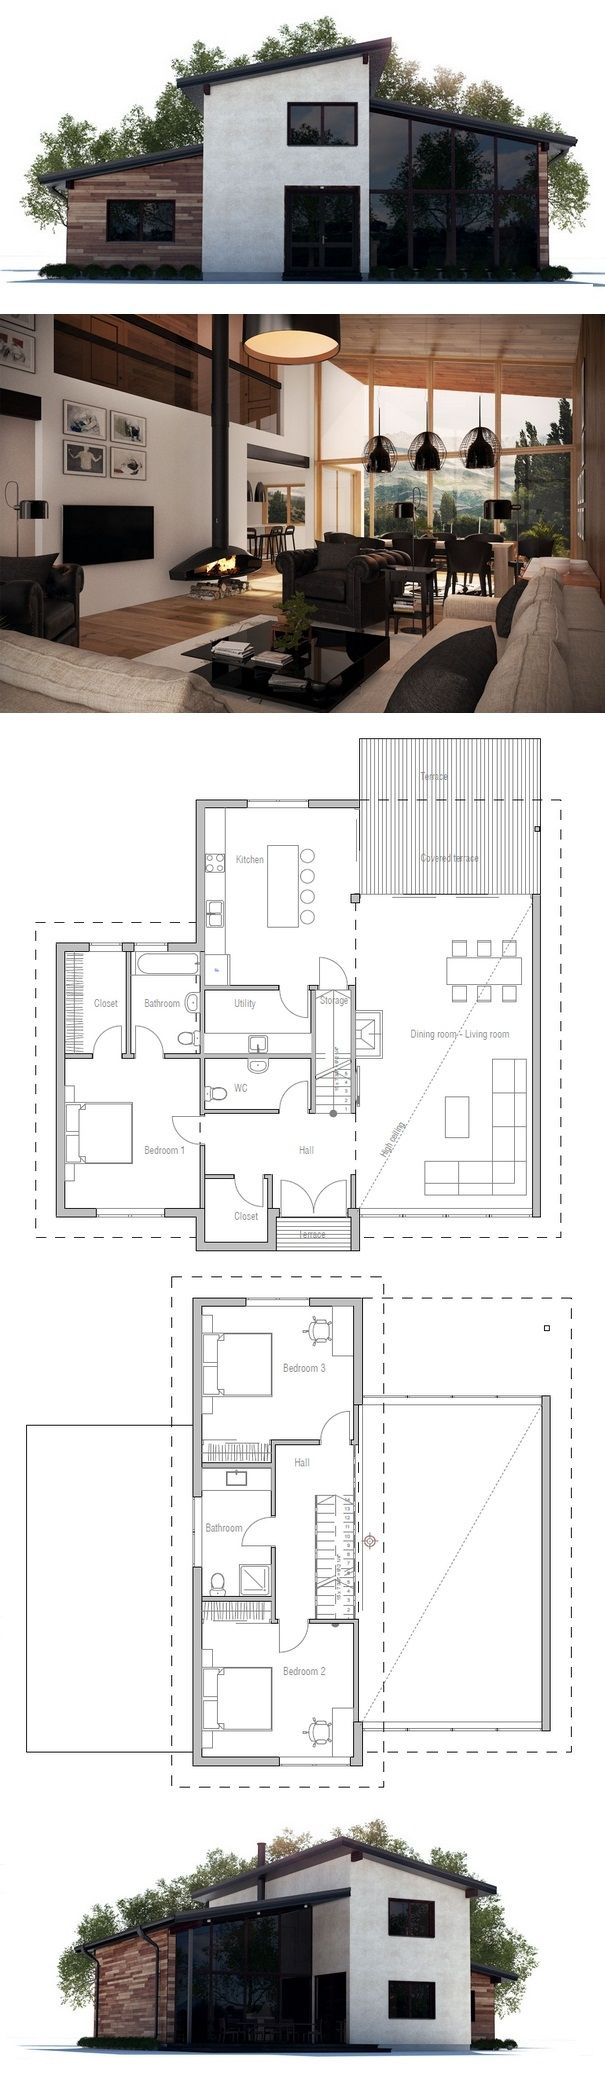 Great elevations and floor plan! I really love that the master is separate from the other bedrooms. Very well done!